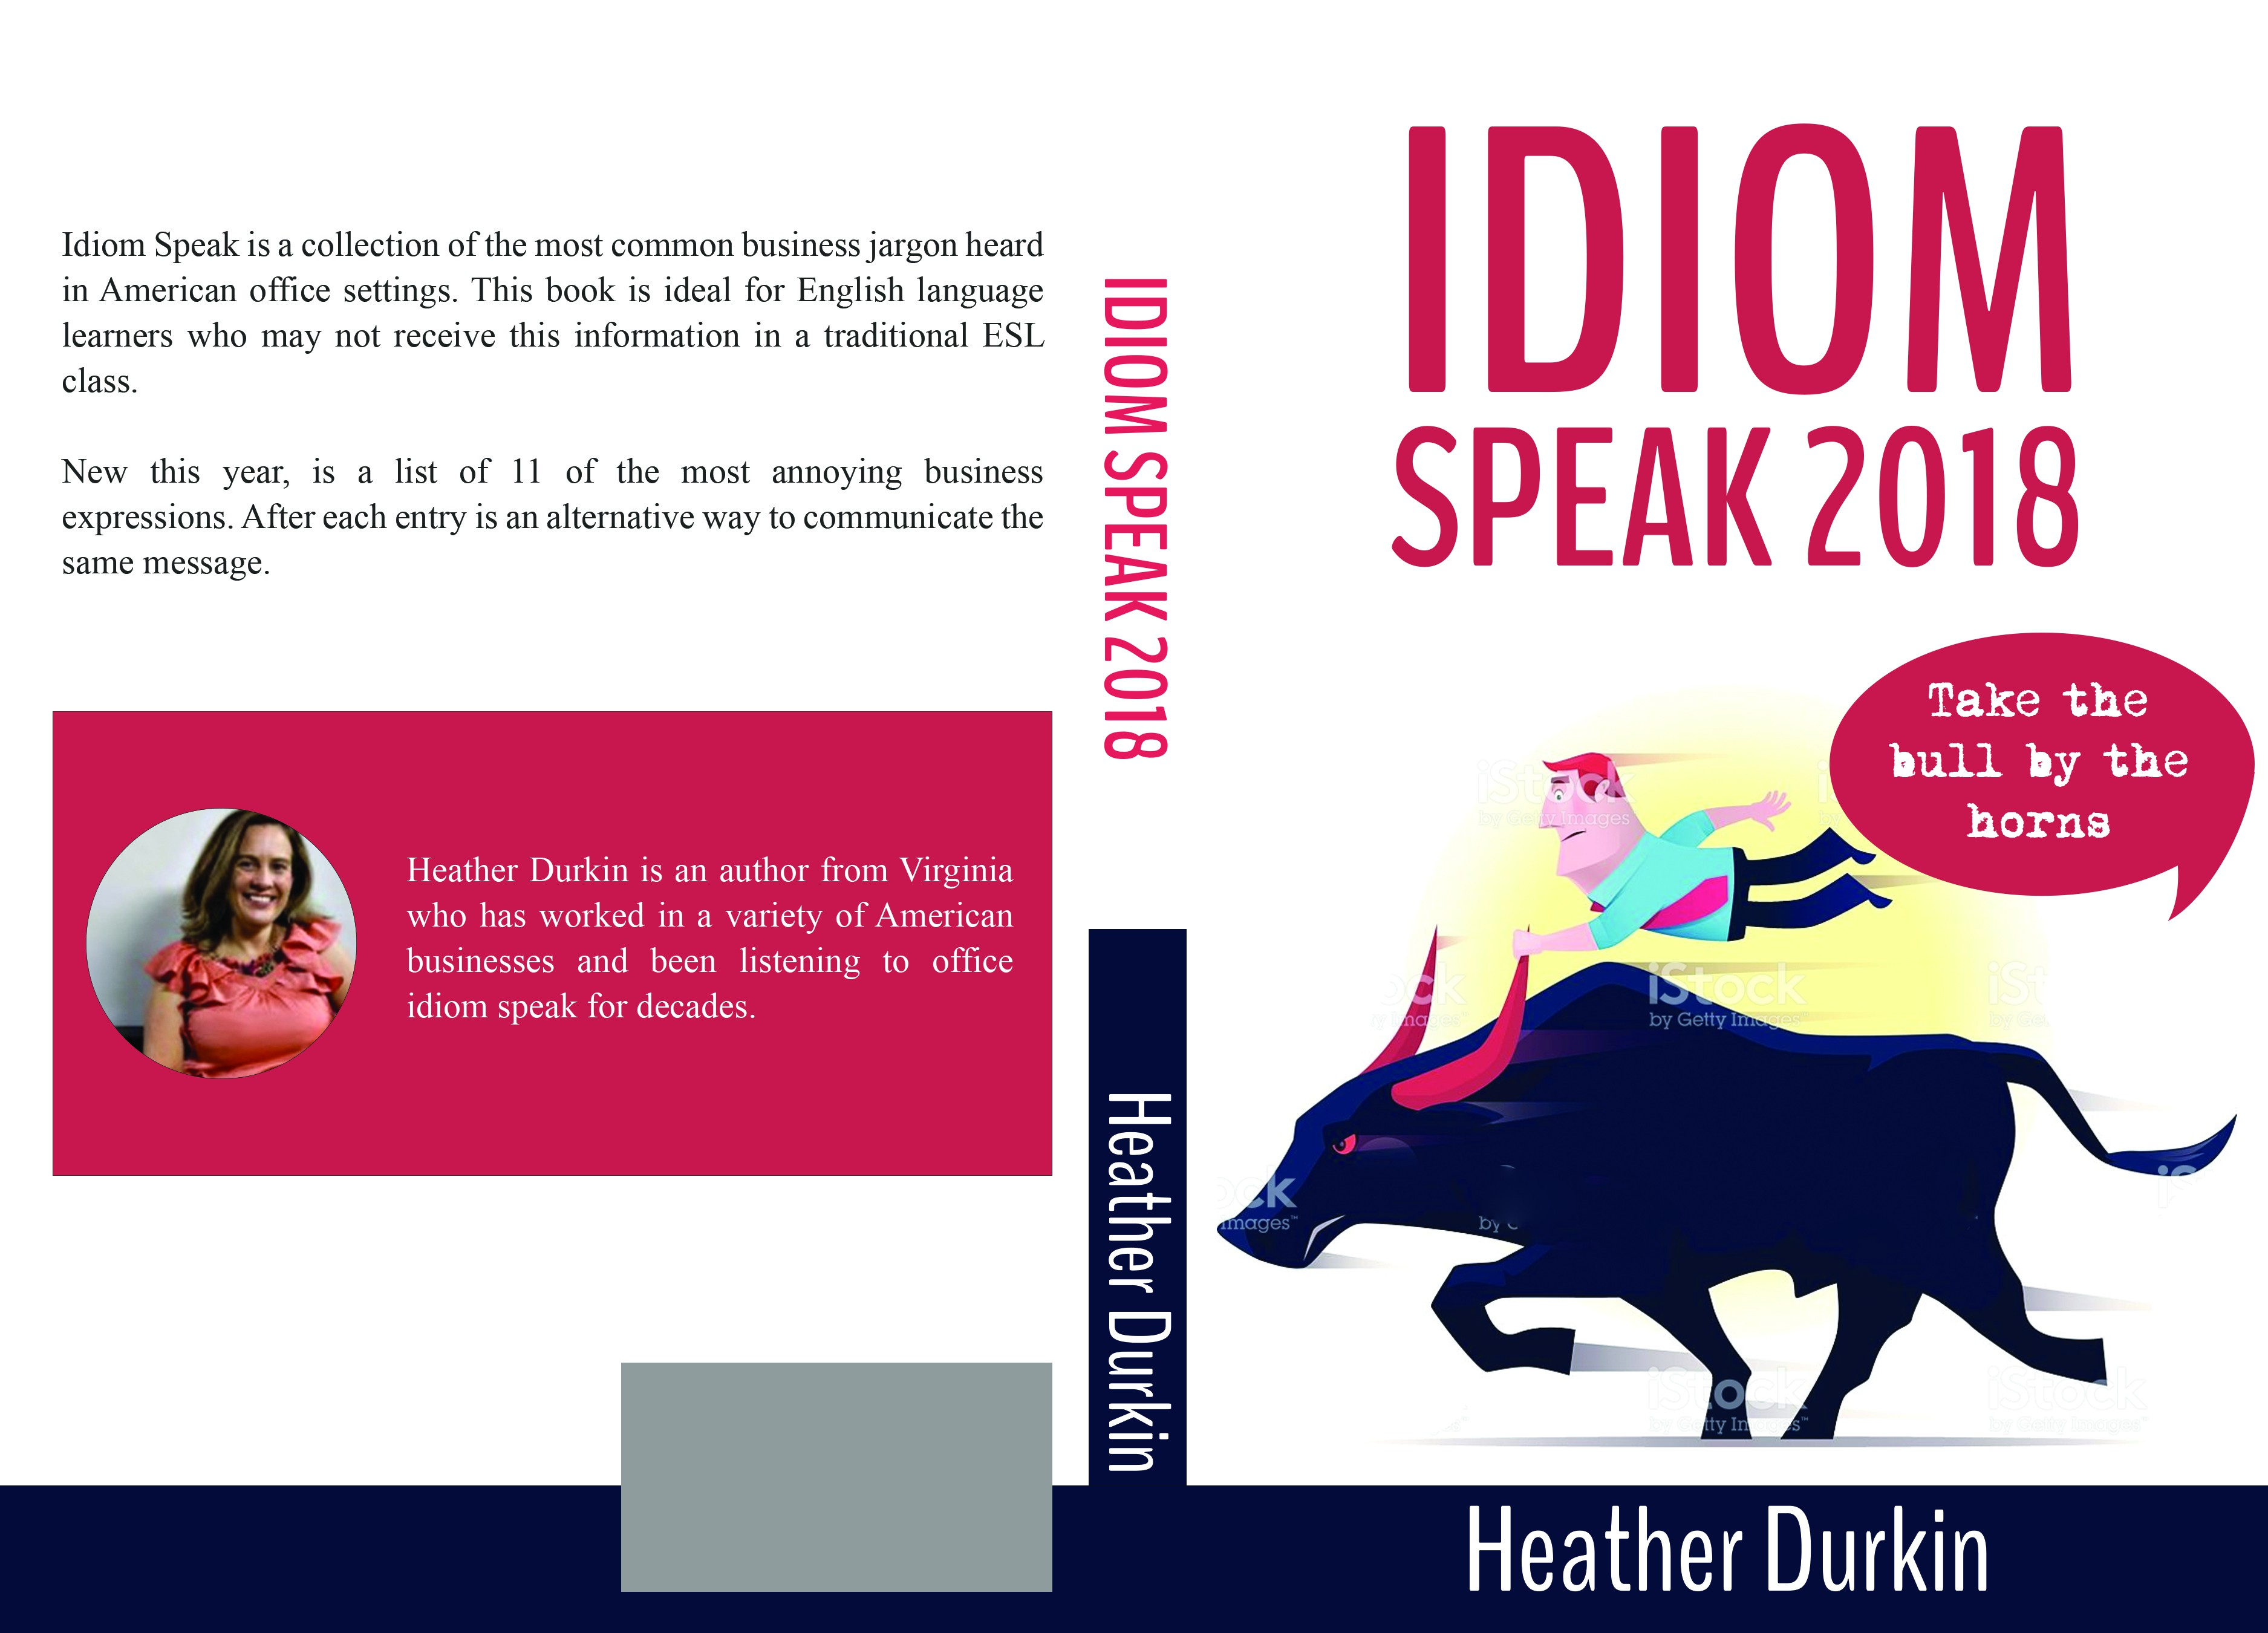 Create a playful book cover for silly business jargon